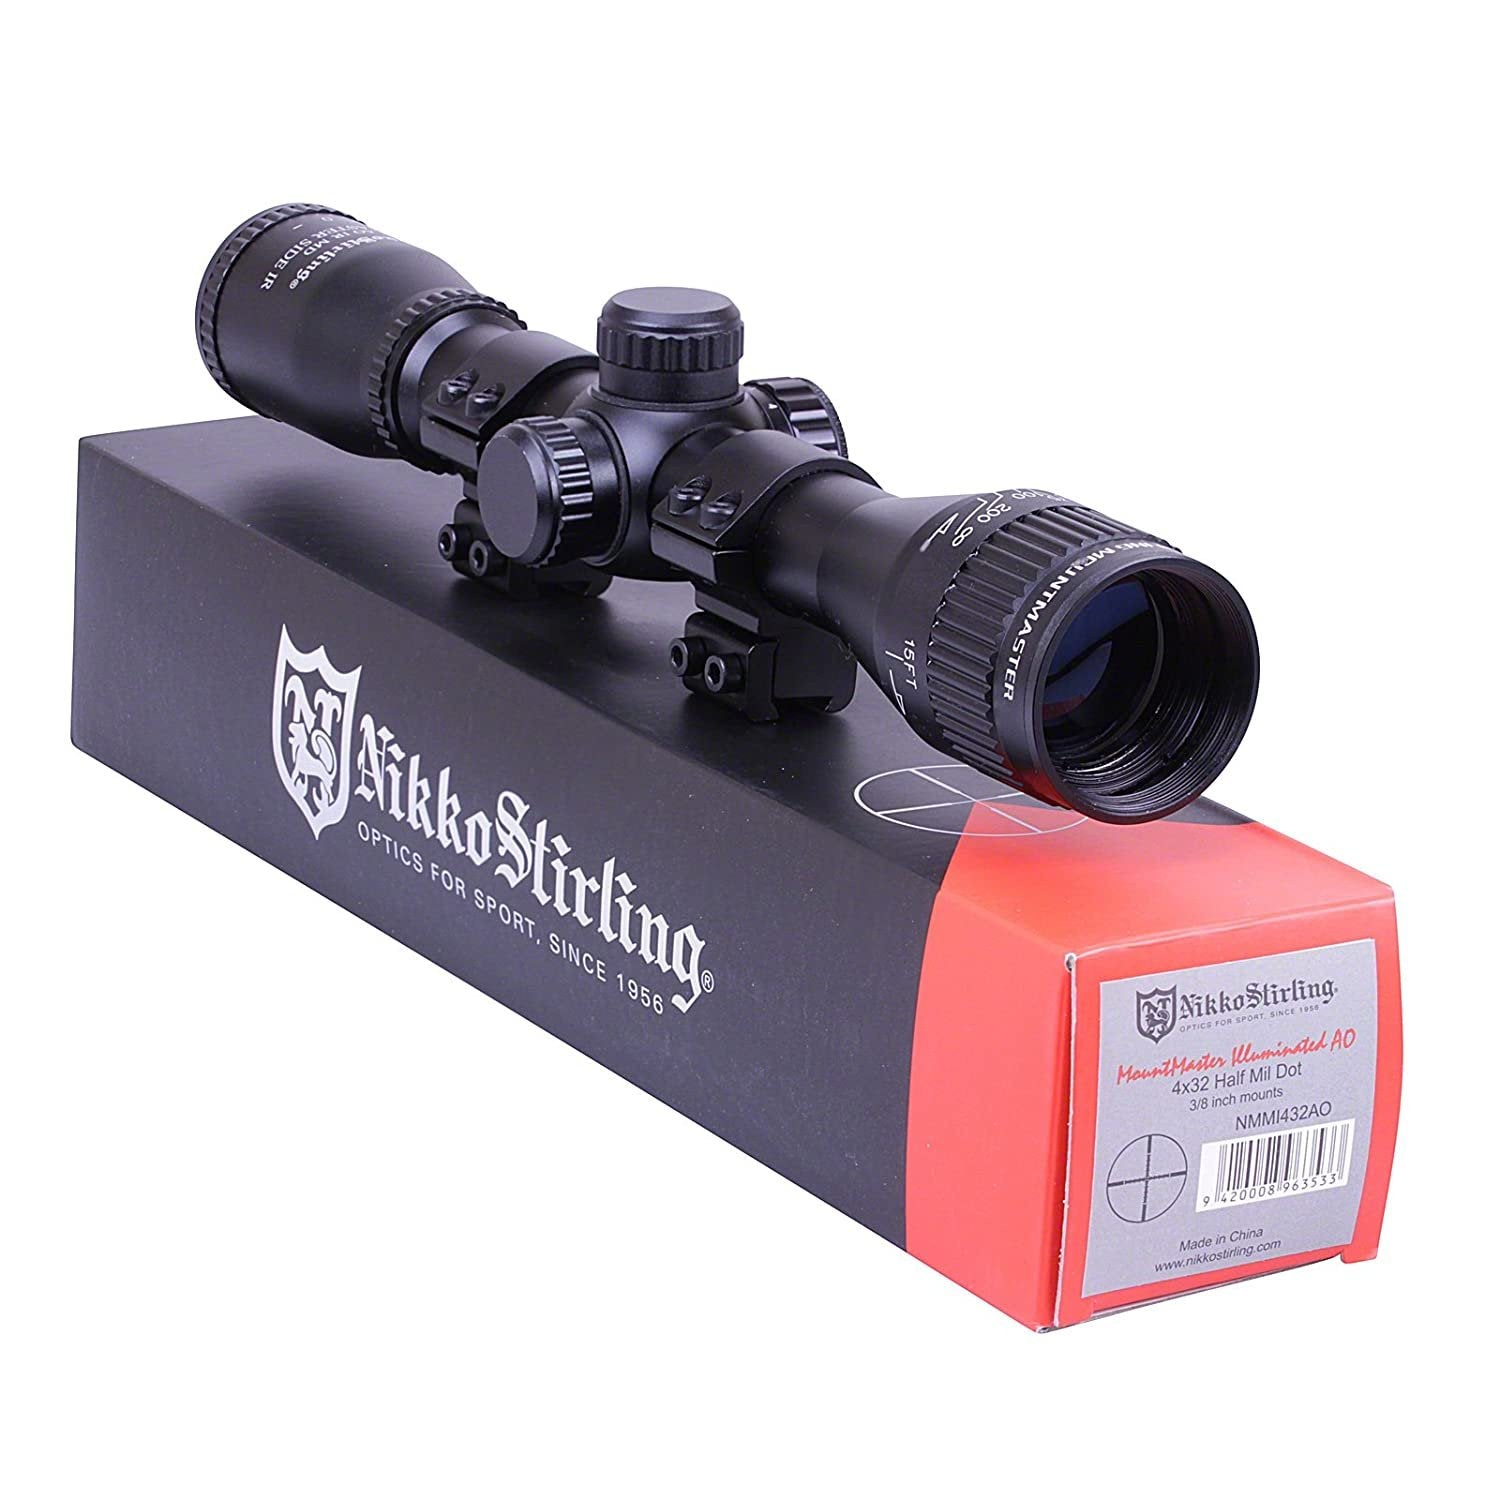 NIKKO MOUNTMASTER SCOPE 4X32 - AirGuns-Liverpool